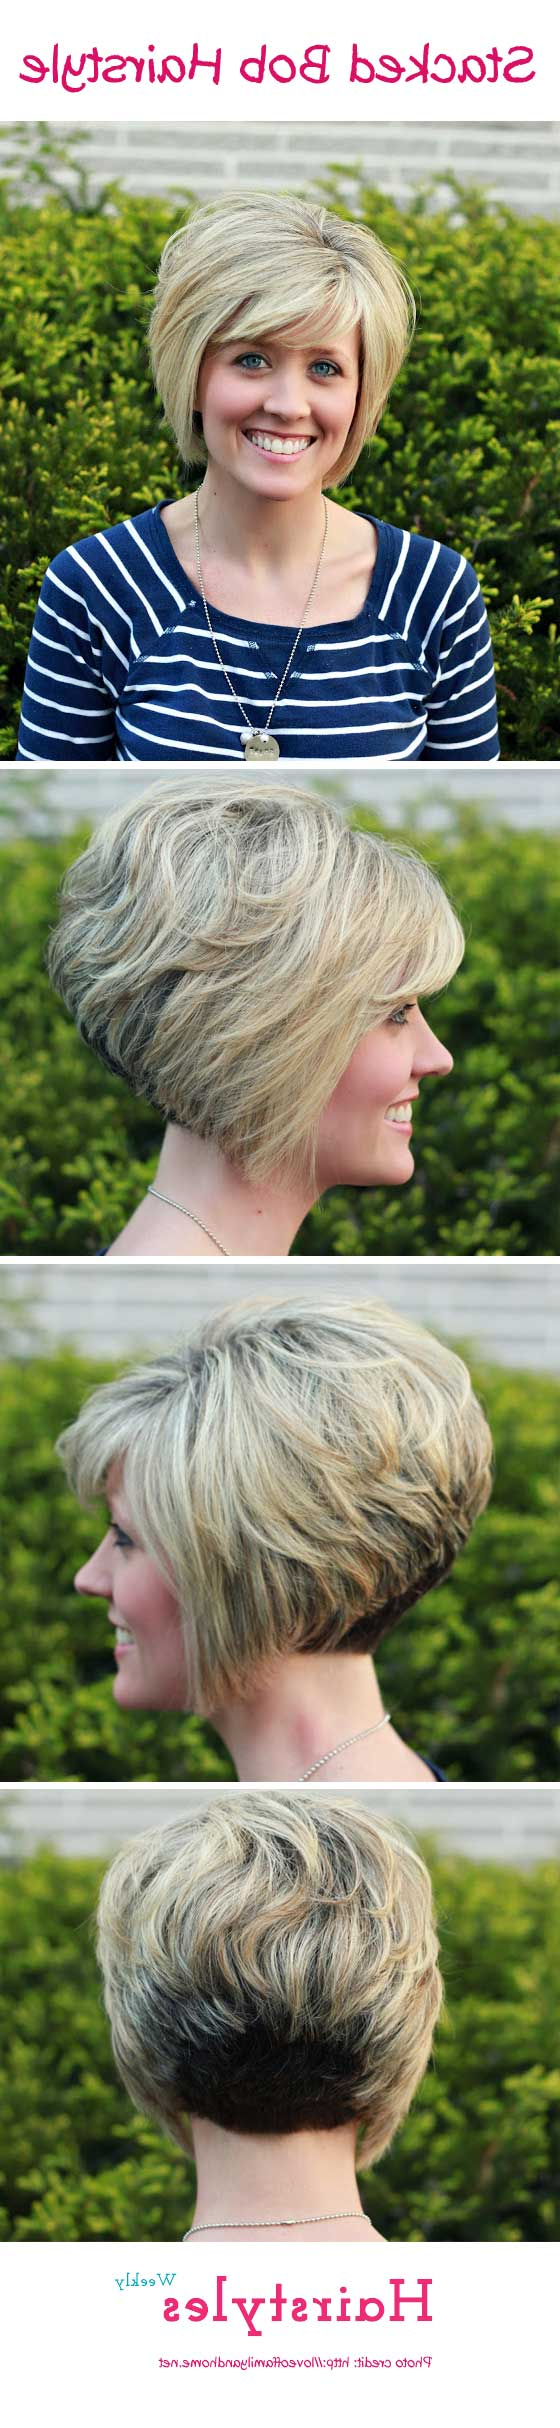 Favorite Volumized Curly Bob Hairstyles With Side Swept Bangs Within Gorgeous Stacked Bob Hairstyle With Side Swept Bangs For (View 15 of 20)